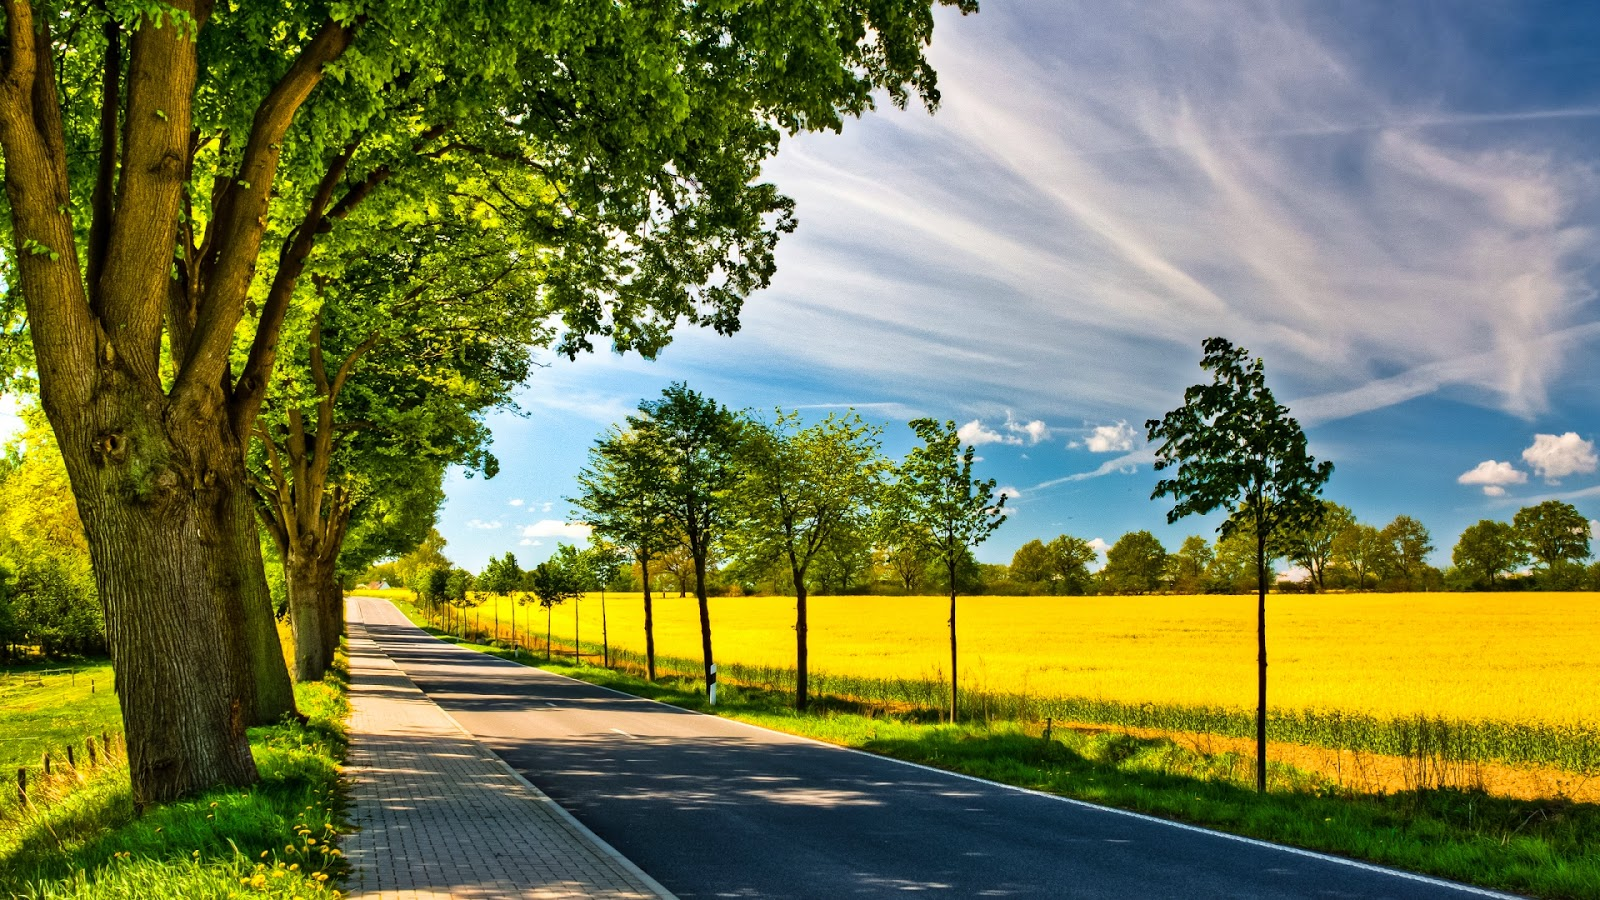 Sunny day images hd